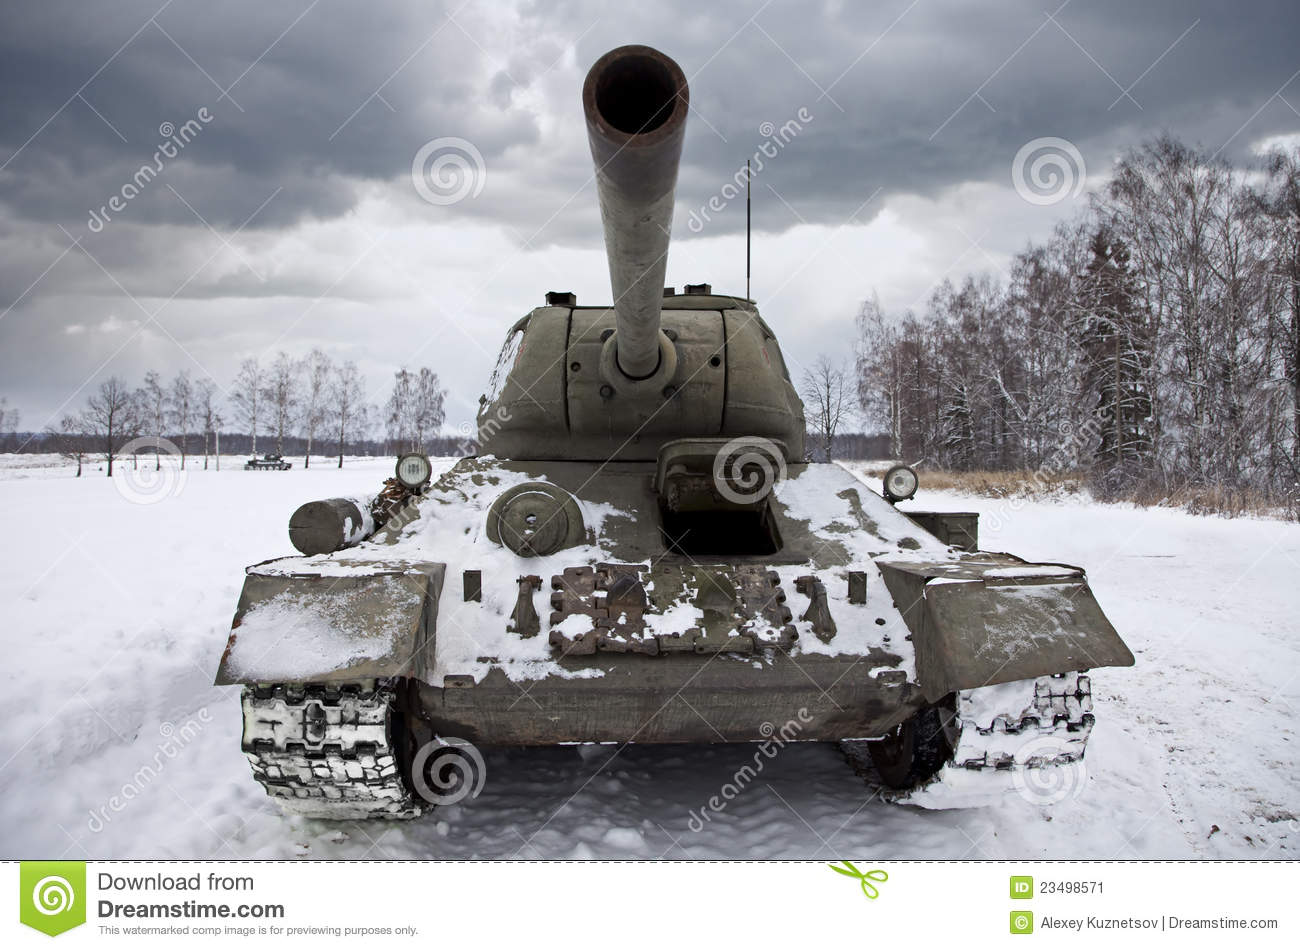 Russian tank t34 royalty free stock images image 23498479 - Russian Tank T34 Stock Image